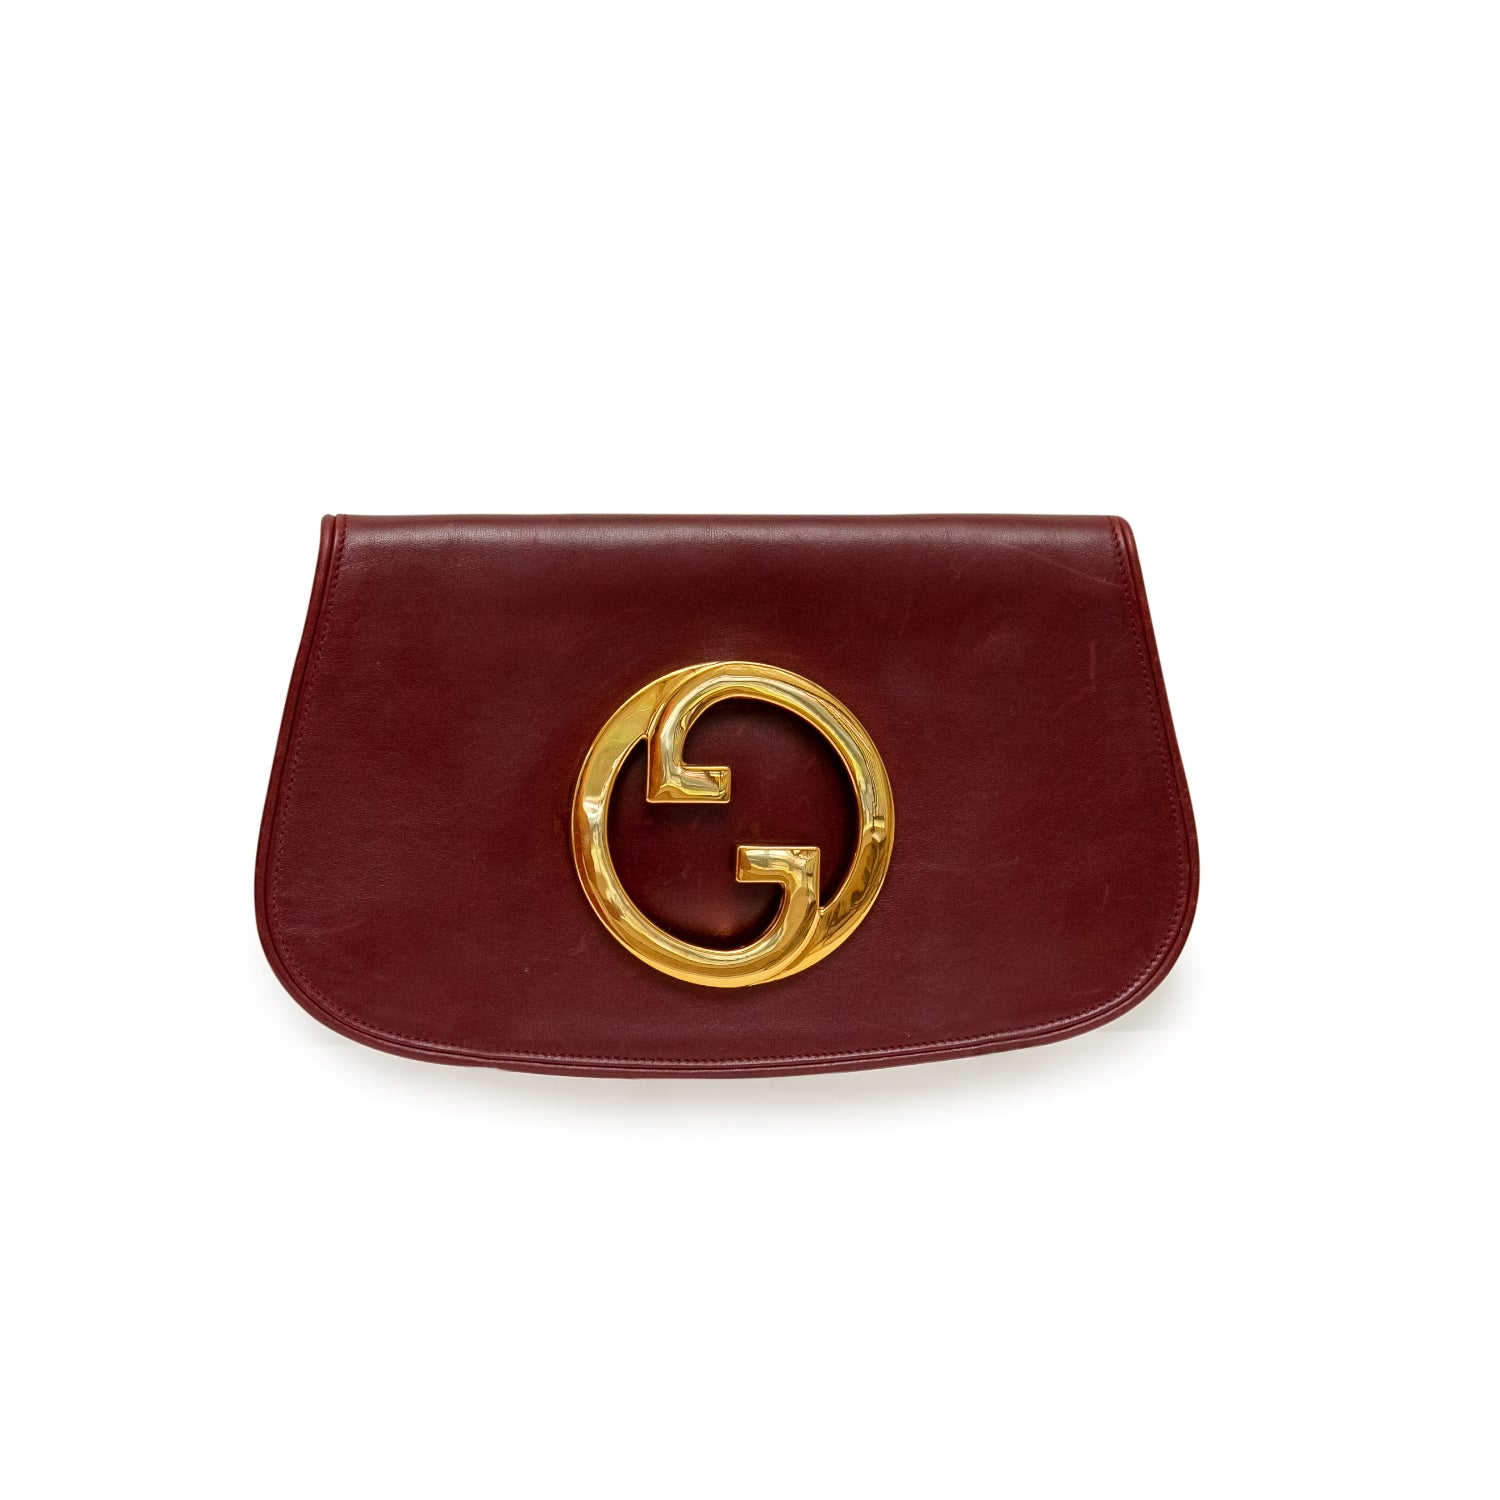 Gucci Blondie GG Leather Clutch